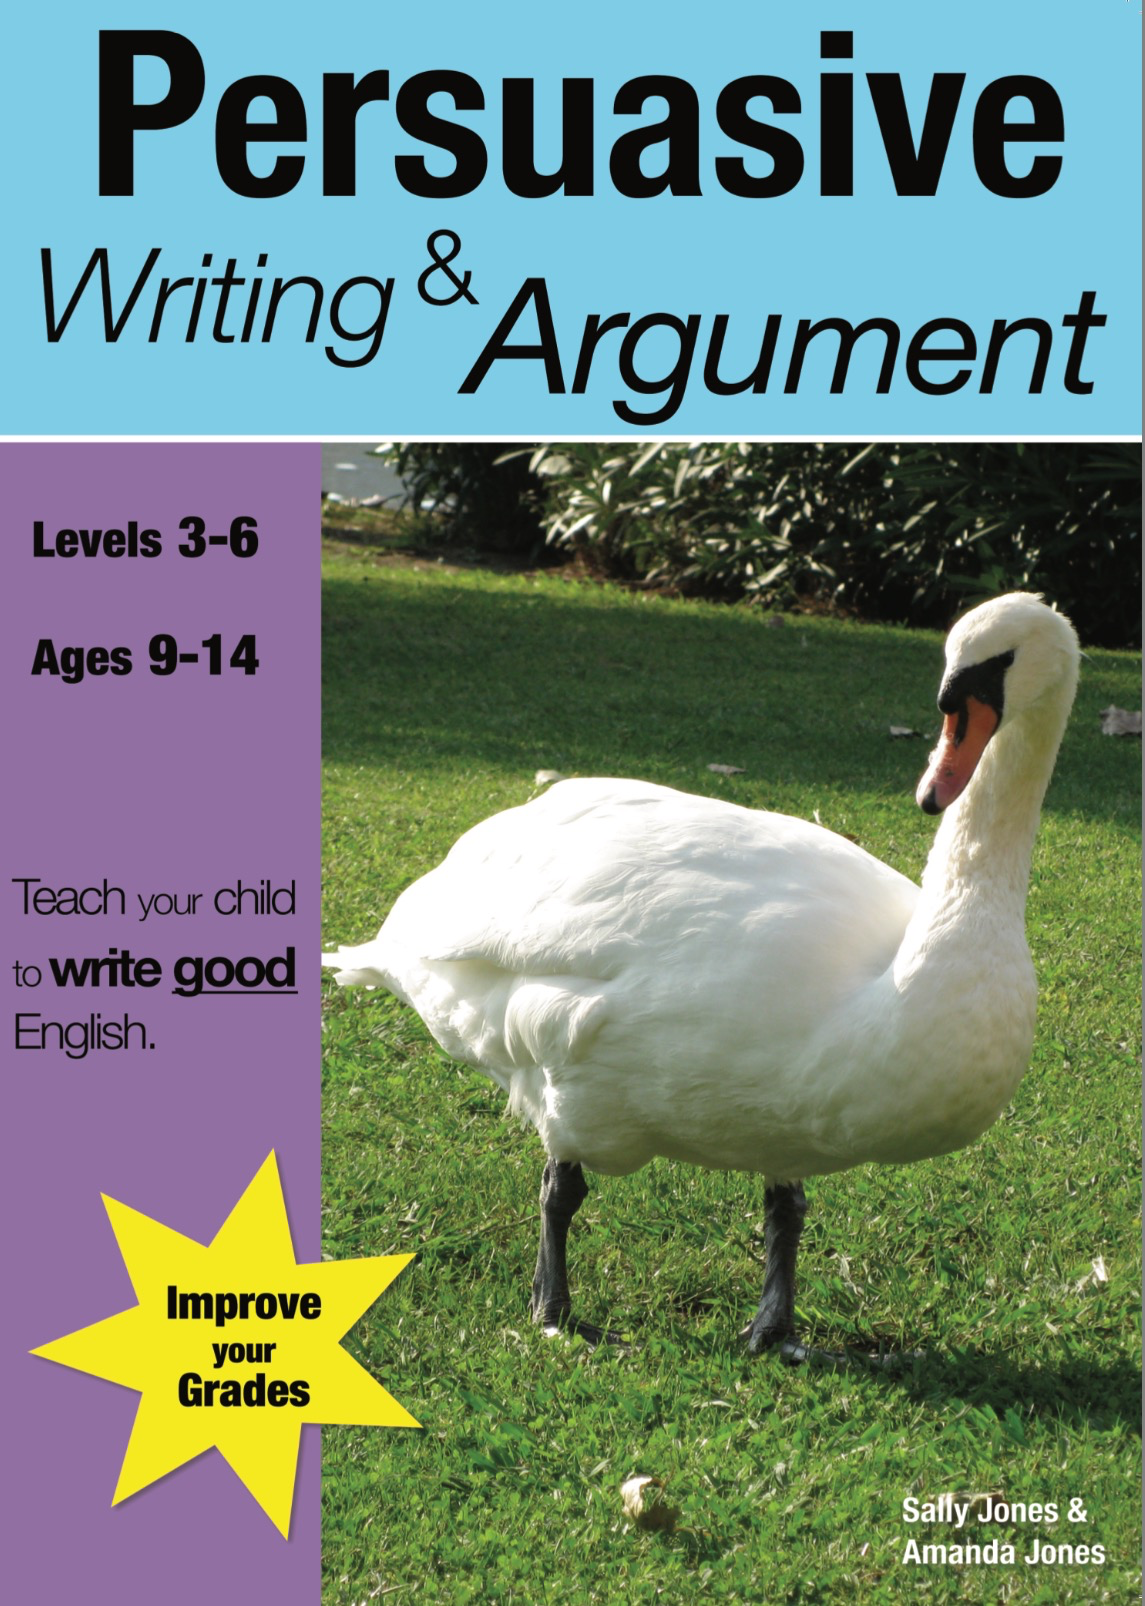 Learning Persuasive Writing and Argument (9-14 years) Print Version